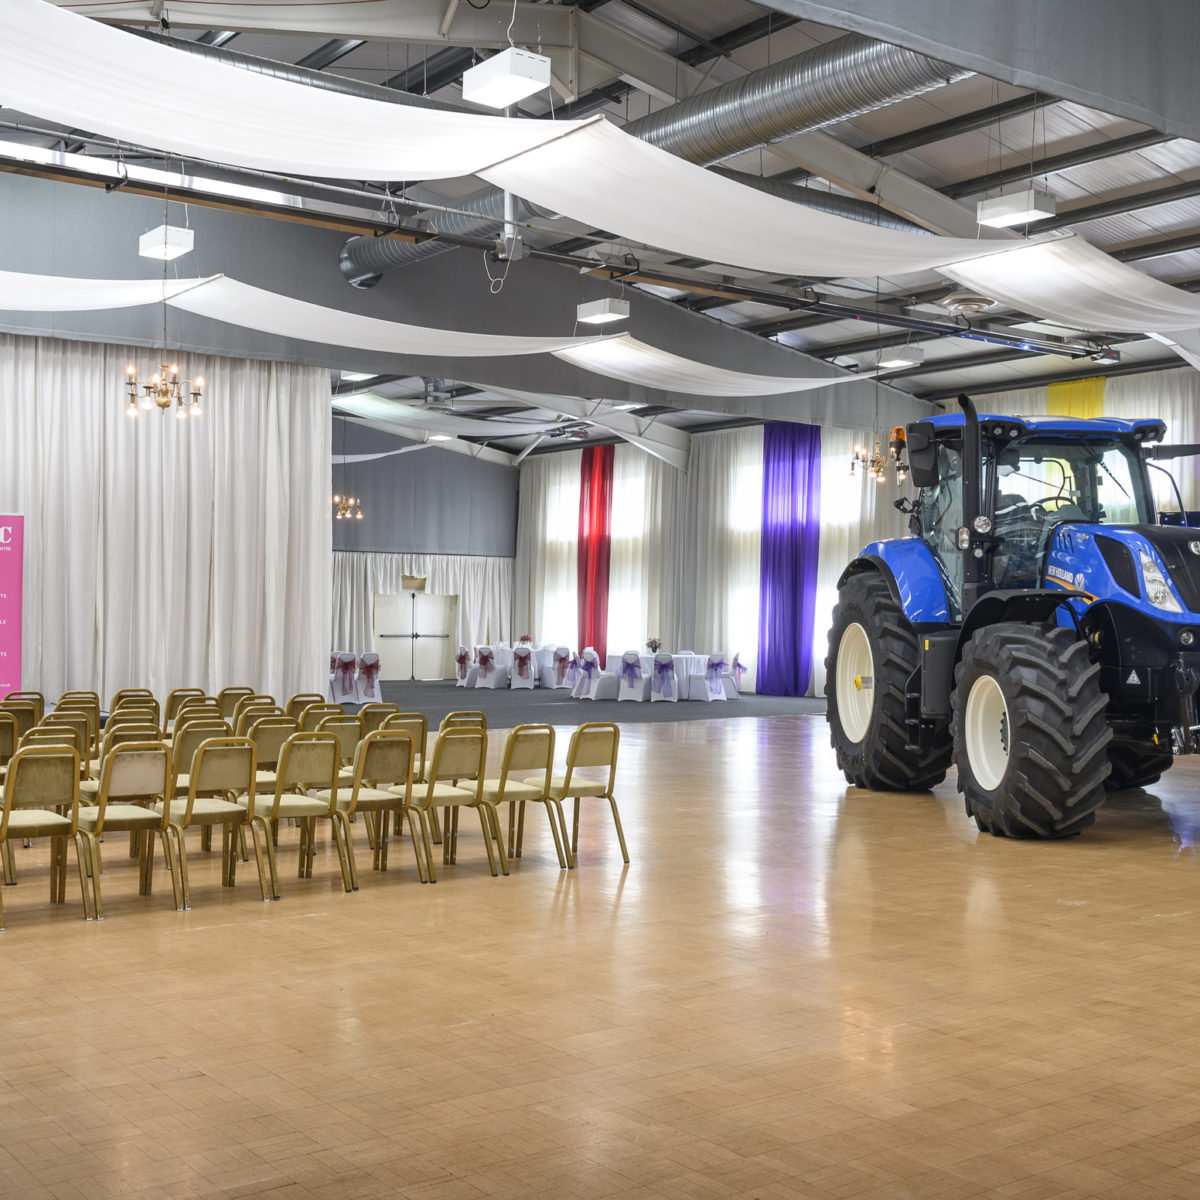 Borders Events Centre in Scotland has a large 1,000 sqm multi-purpose hall